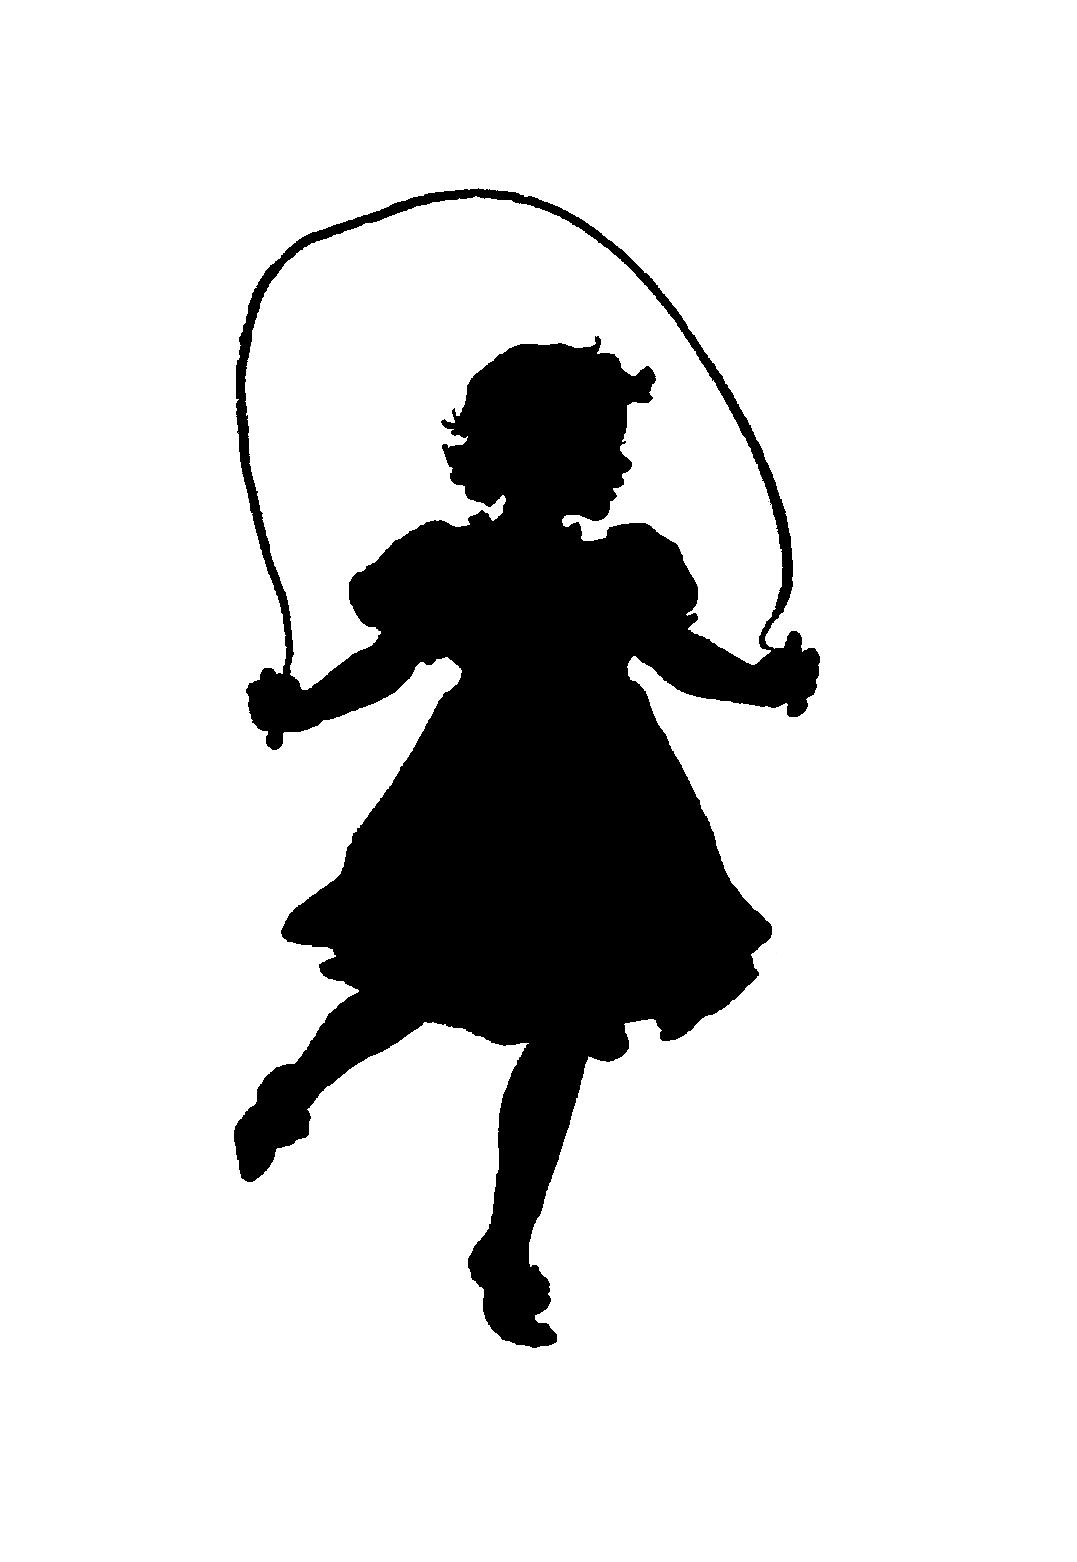 1077x1562 Child Silhouette Man Clipart Black And White